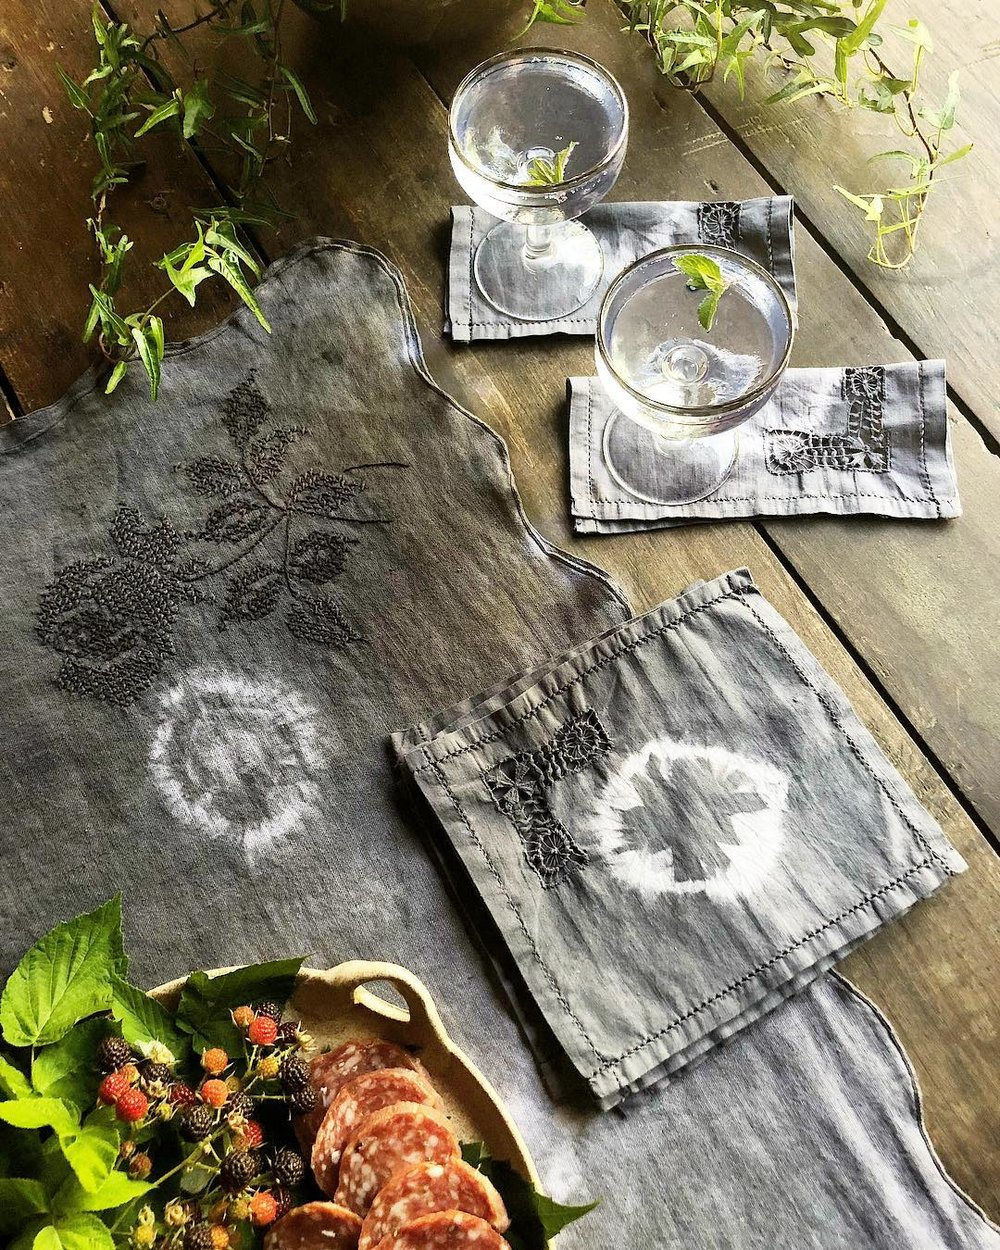 shibori - We collect vintage cotton linens that have qualities and details and then use ancient Japanese inspired techniques to resist-dye them into a diversity of unique and un-replicatable patterns.Each set or piece of our dyed linens are one of kind and produced in small batches, guaranteeing that no two will be alike..a unique and interesting way to add a touch of pattern to any space.